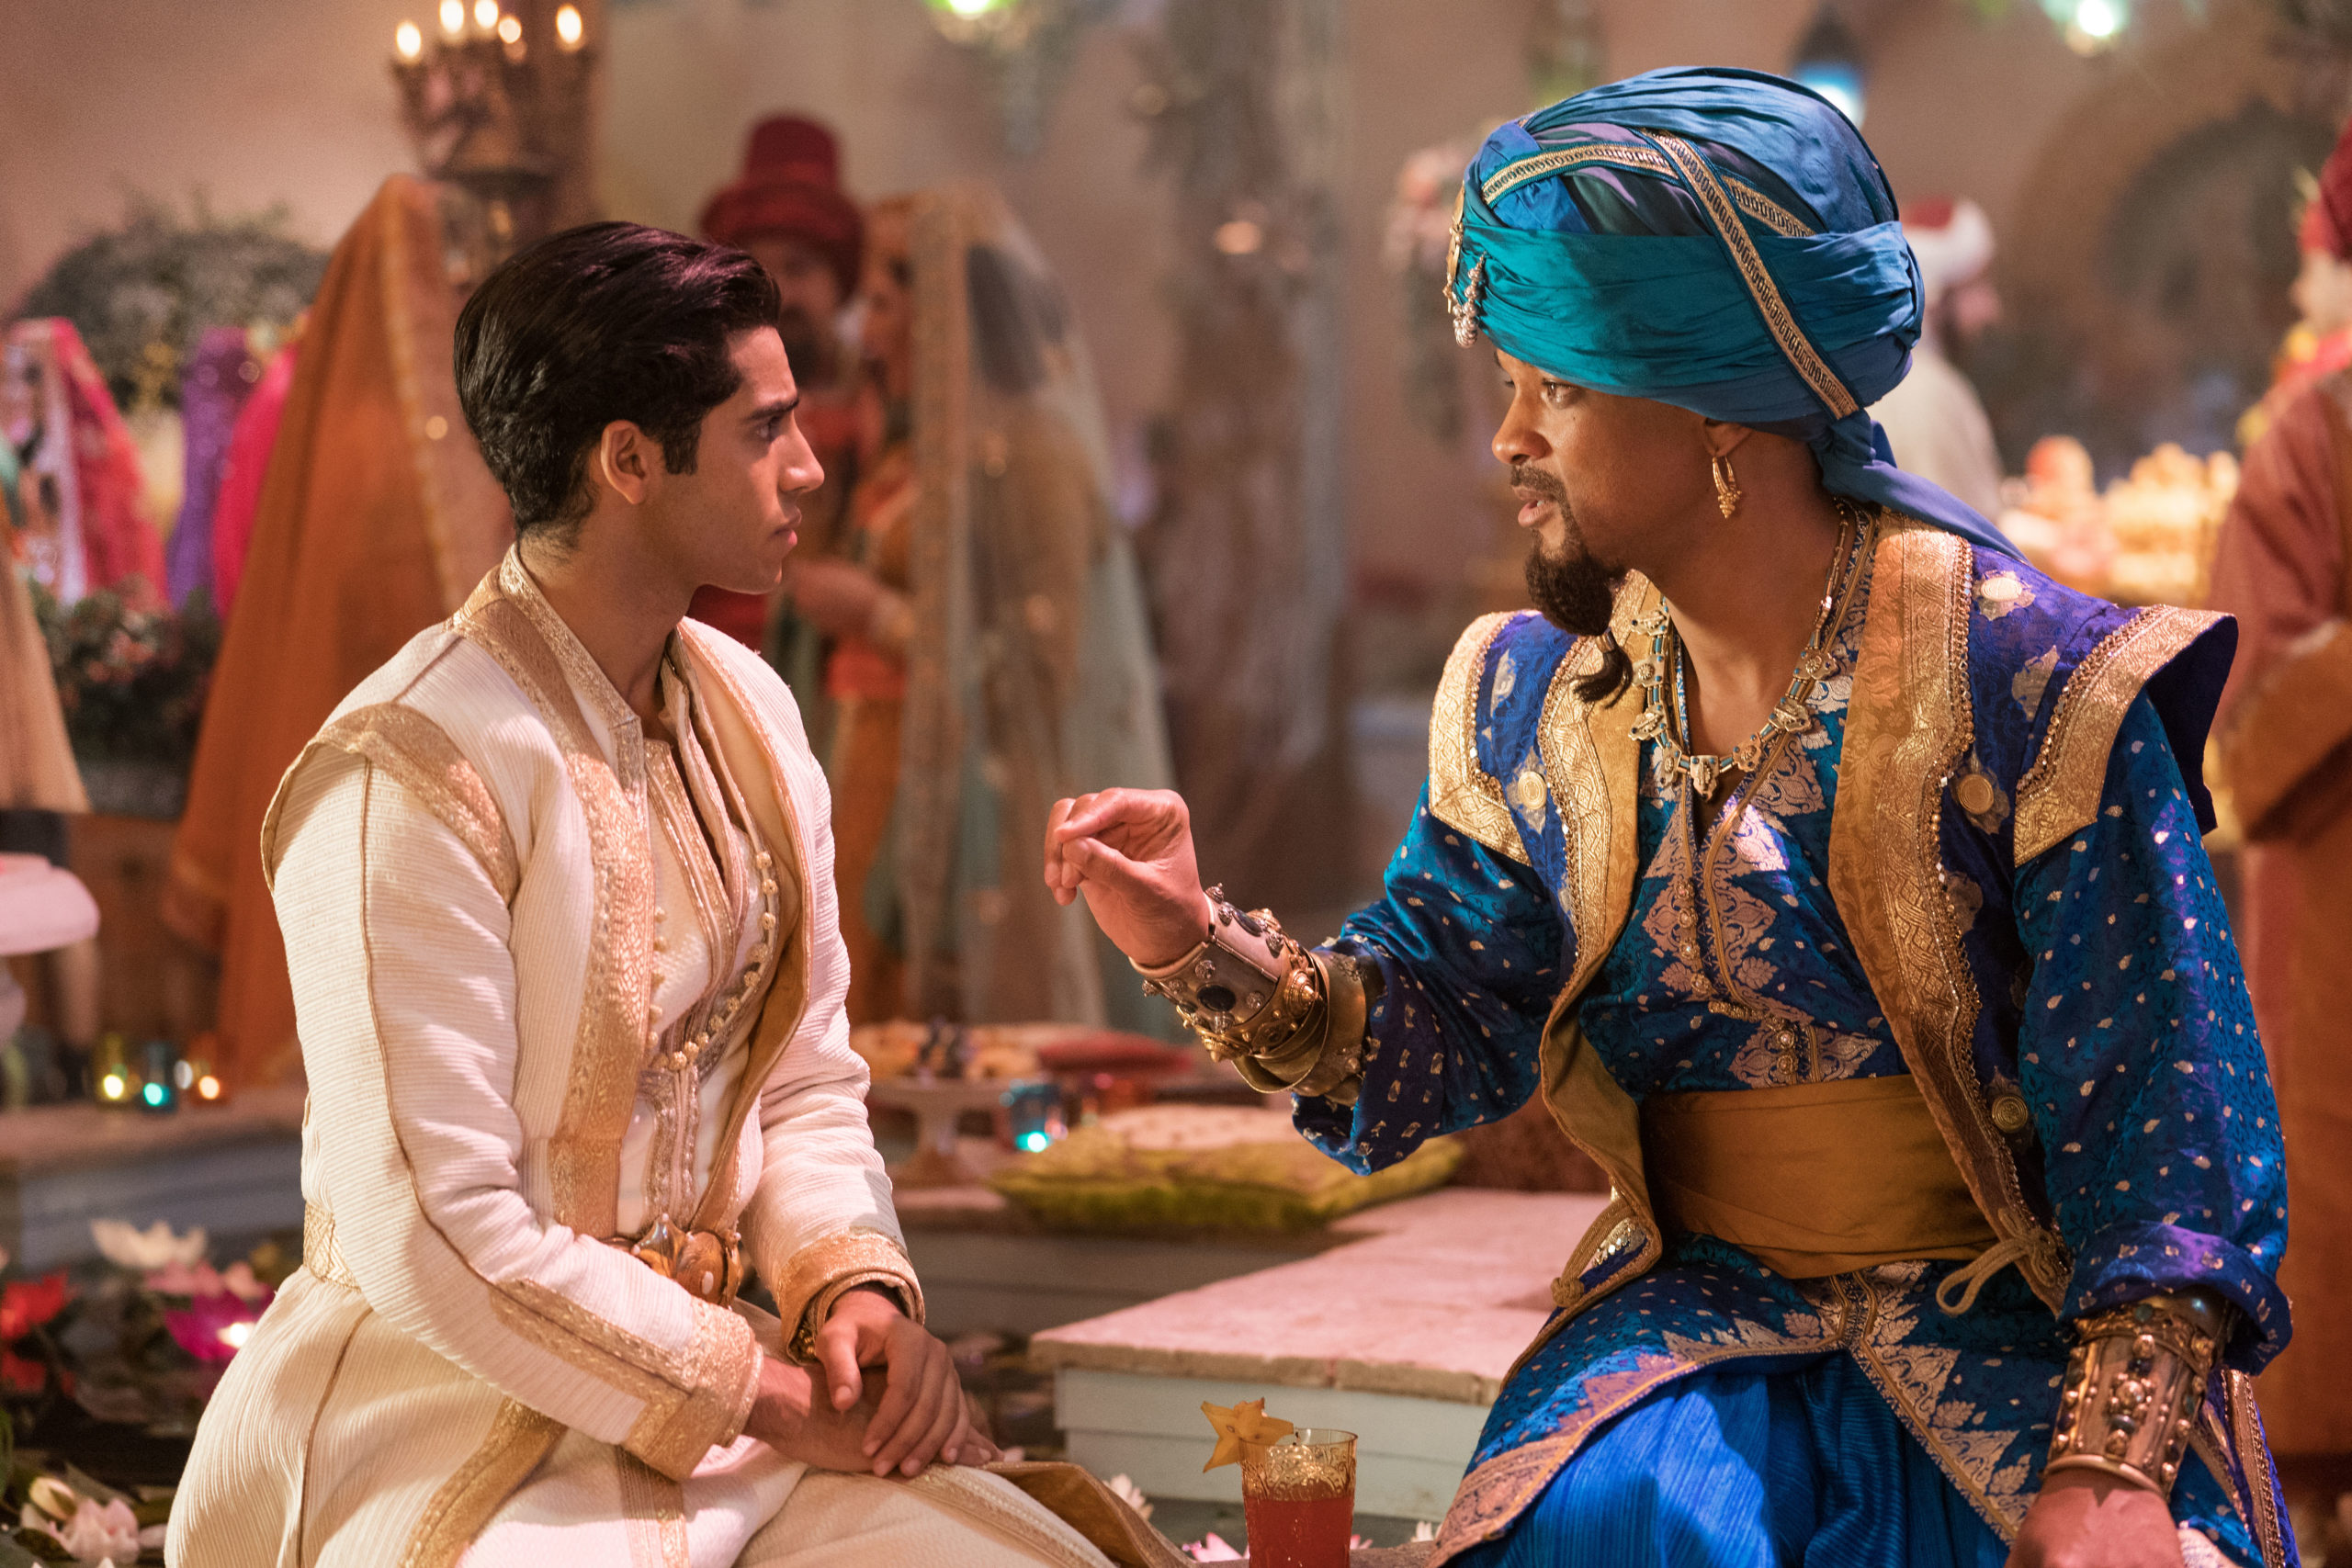 Will Smith is the Genie and Mena Massoud is Aladdin in Disney's live-action ALADDIN, directed by Guy Ritchie.